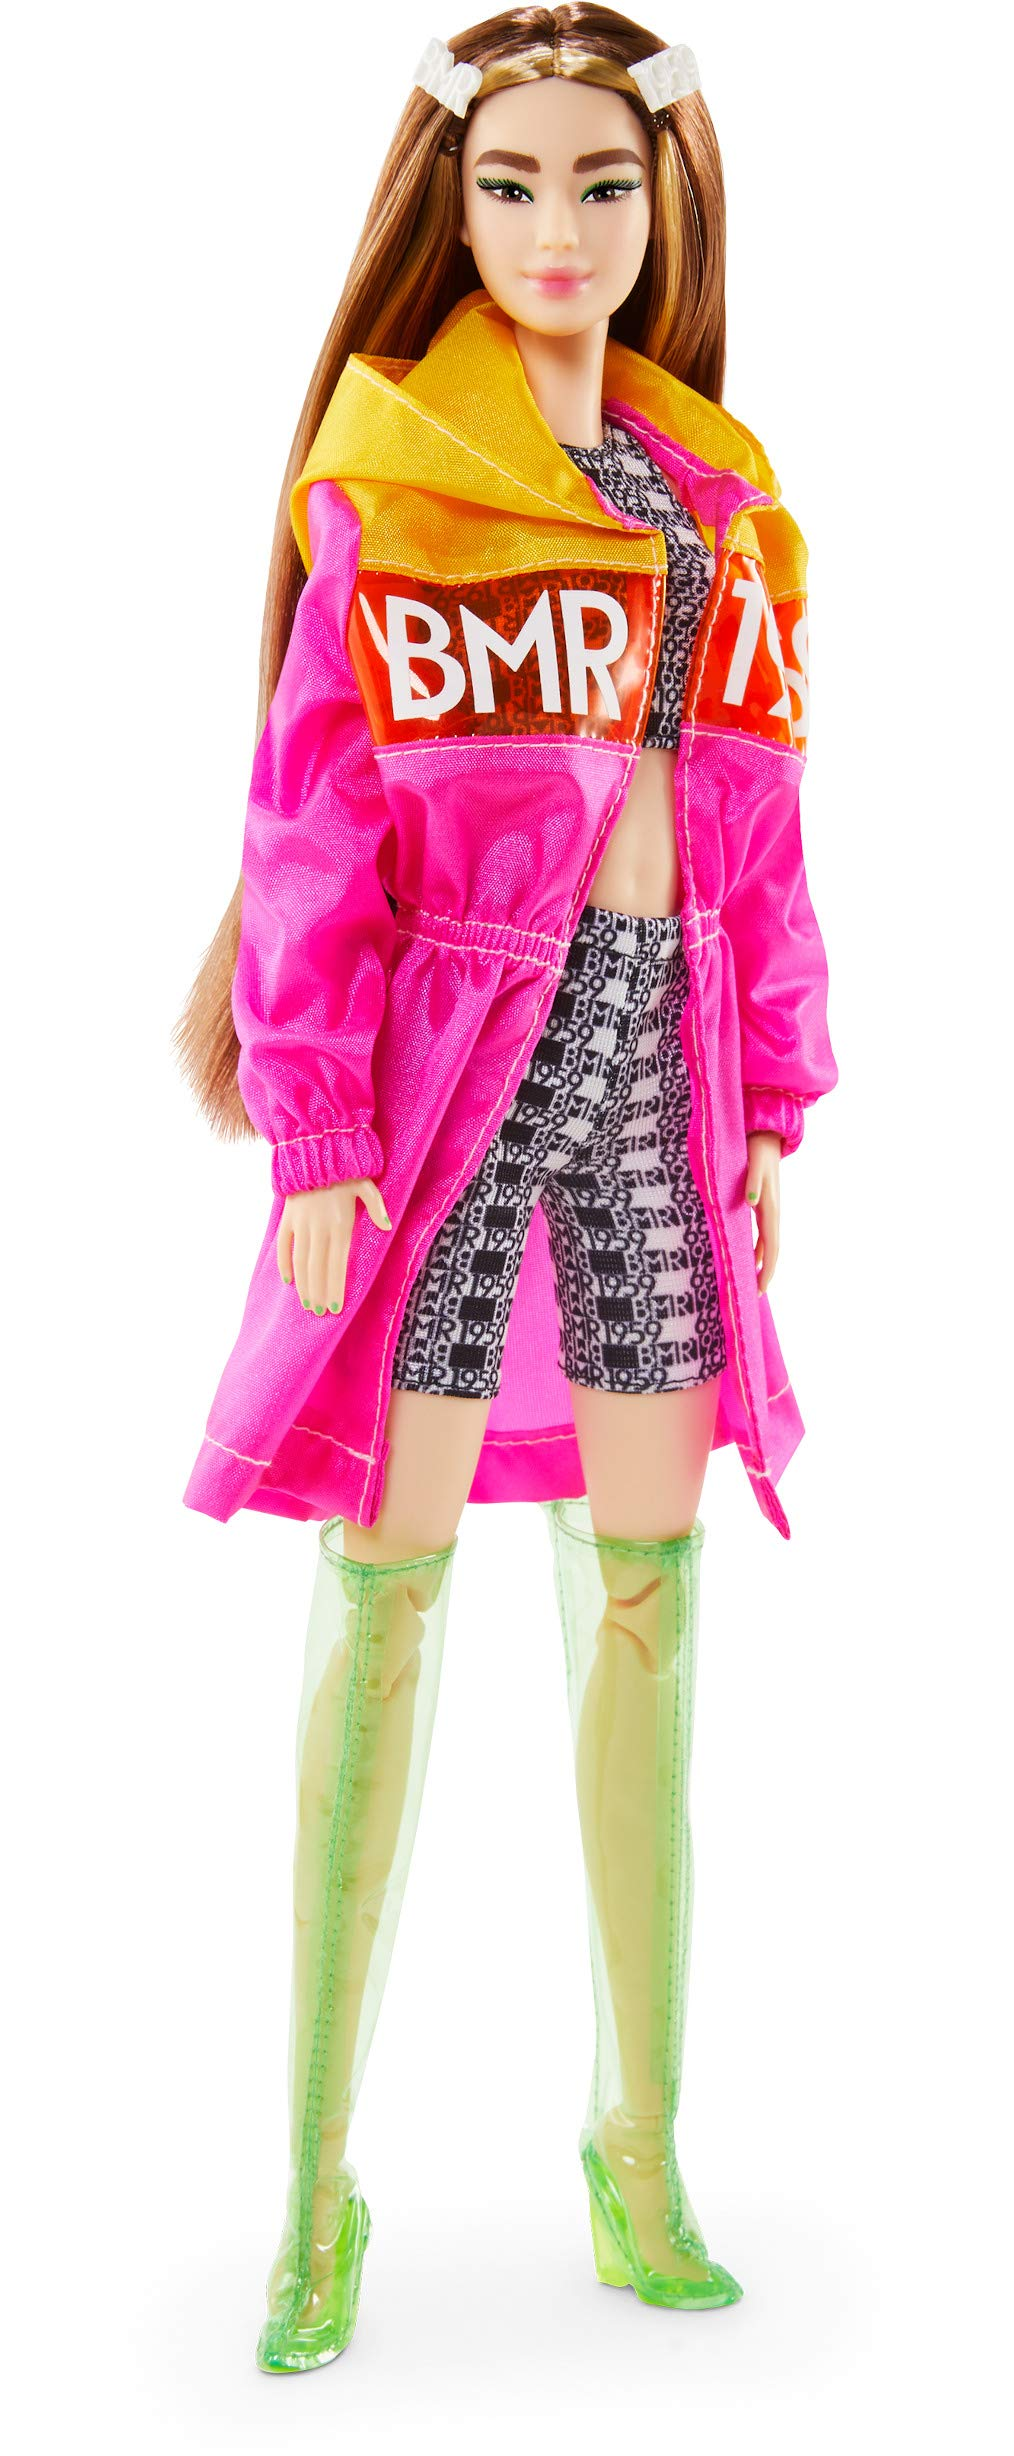 BMR1959 Fully Poseable Fashion Doll Tall Jacket, Shorts /& Vinyl Boots